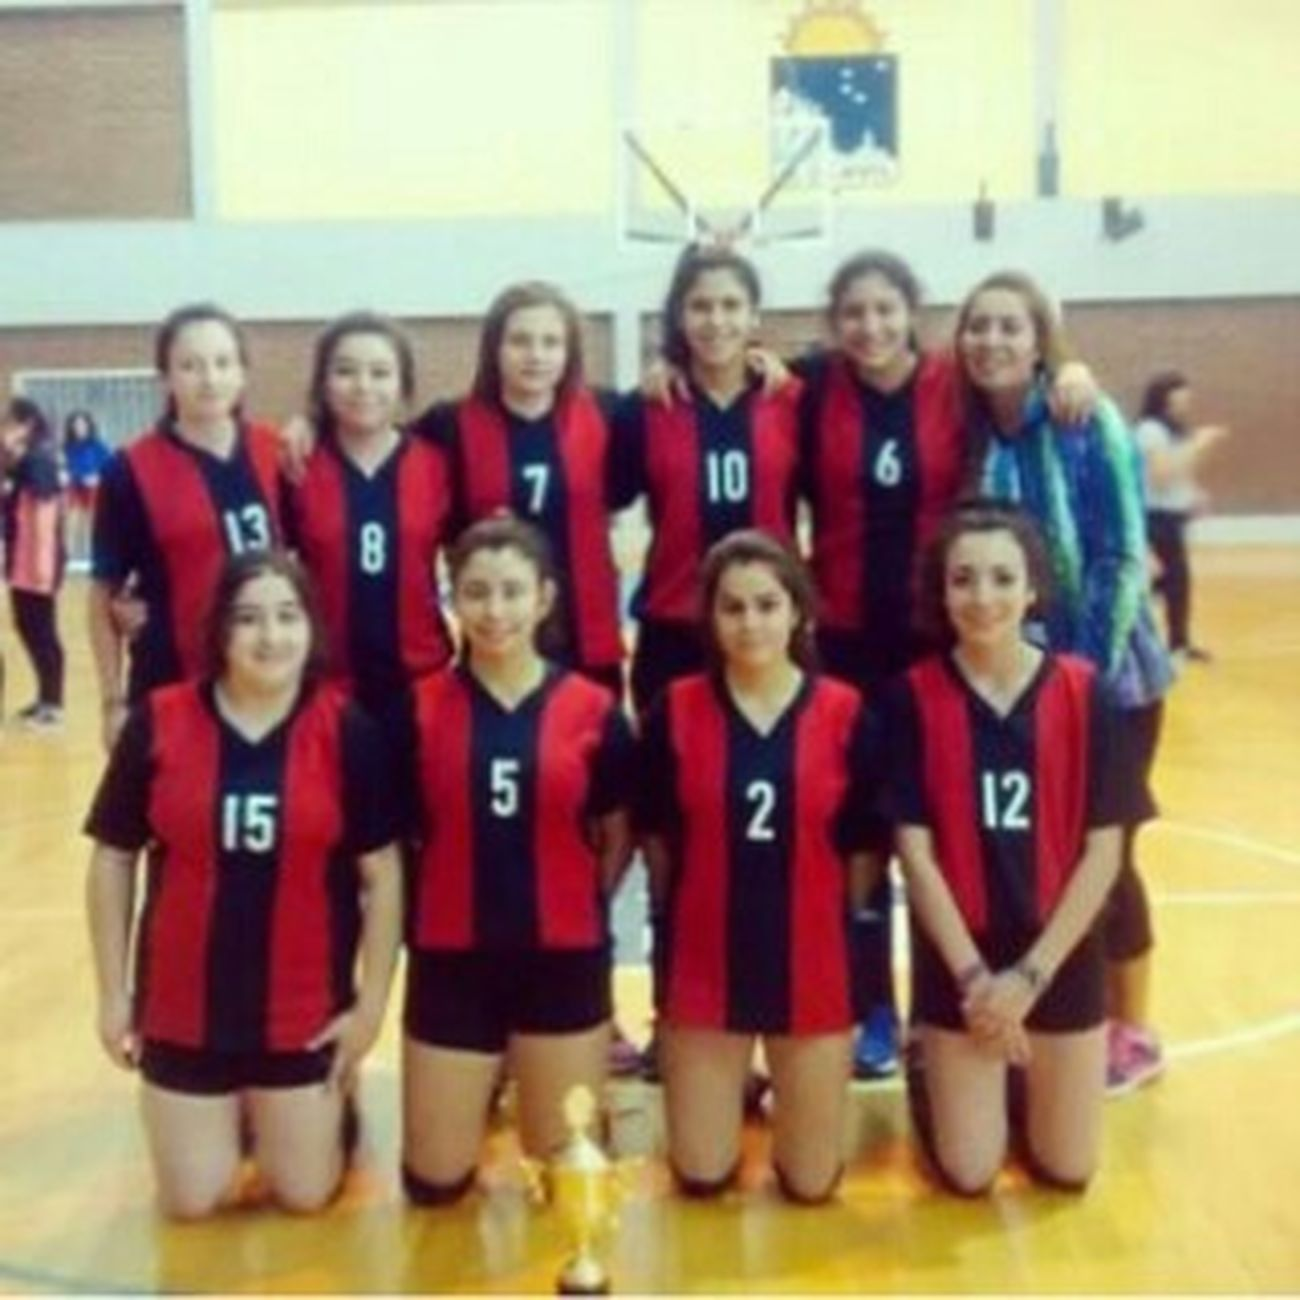 Equipo <3 Campeon <3 Voleyball